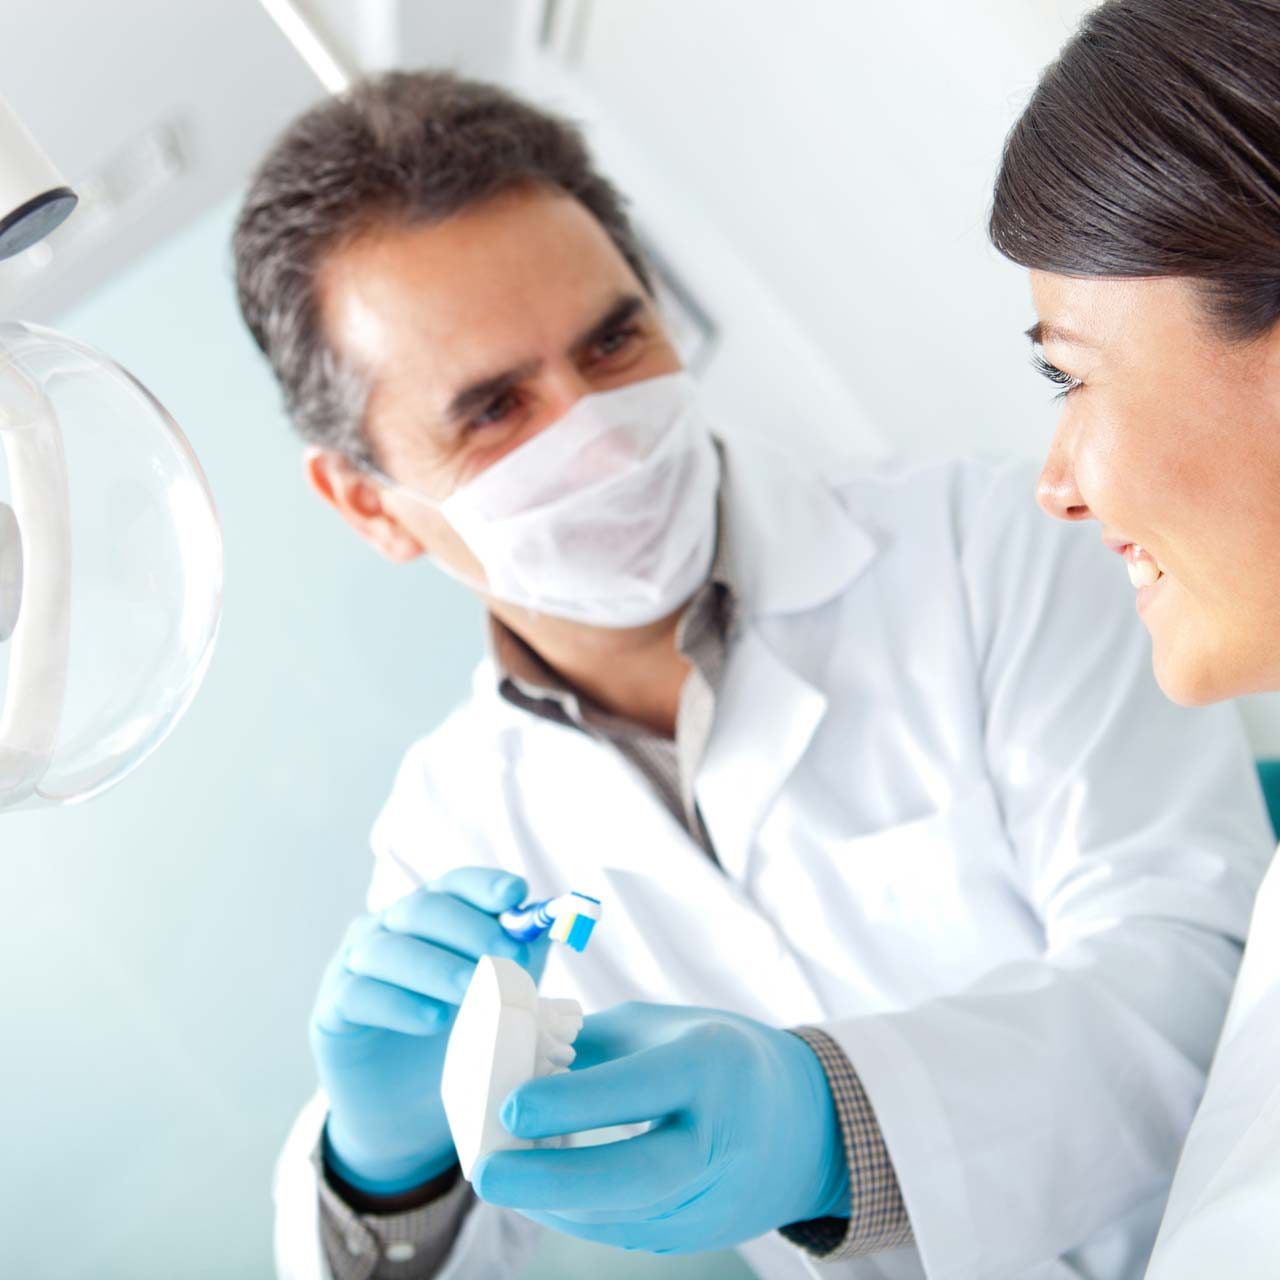 dentist_maledentistwithtoothbrushtalkingtopatient-5616x3744